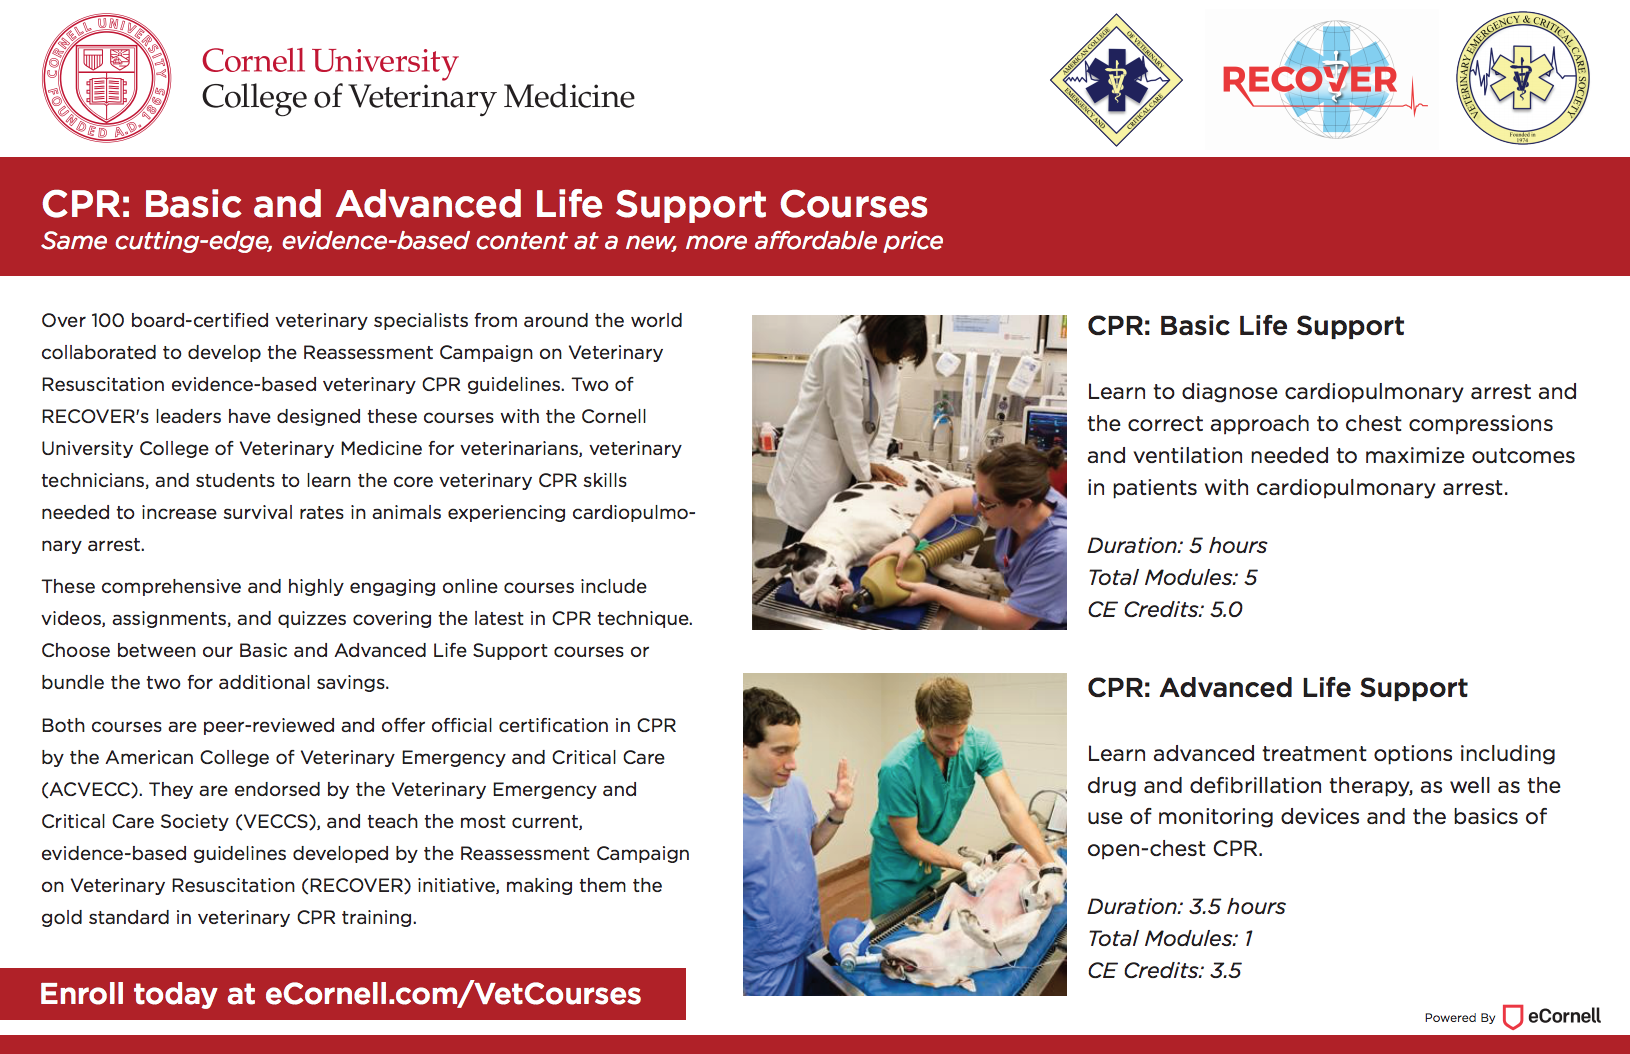 CPR: Basic and Advanced Life Support Courses Flyer